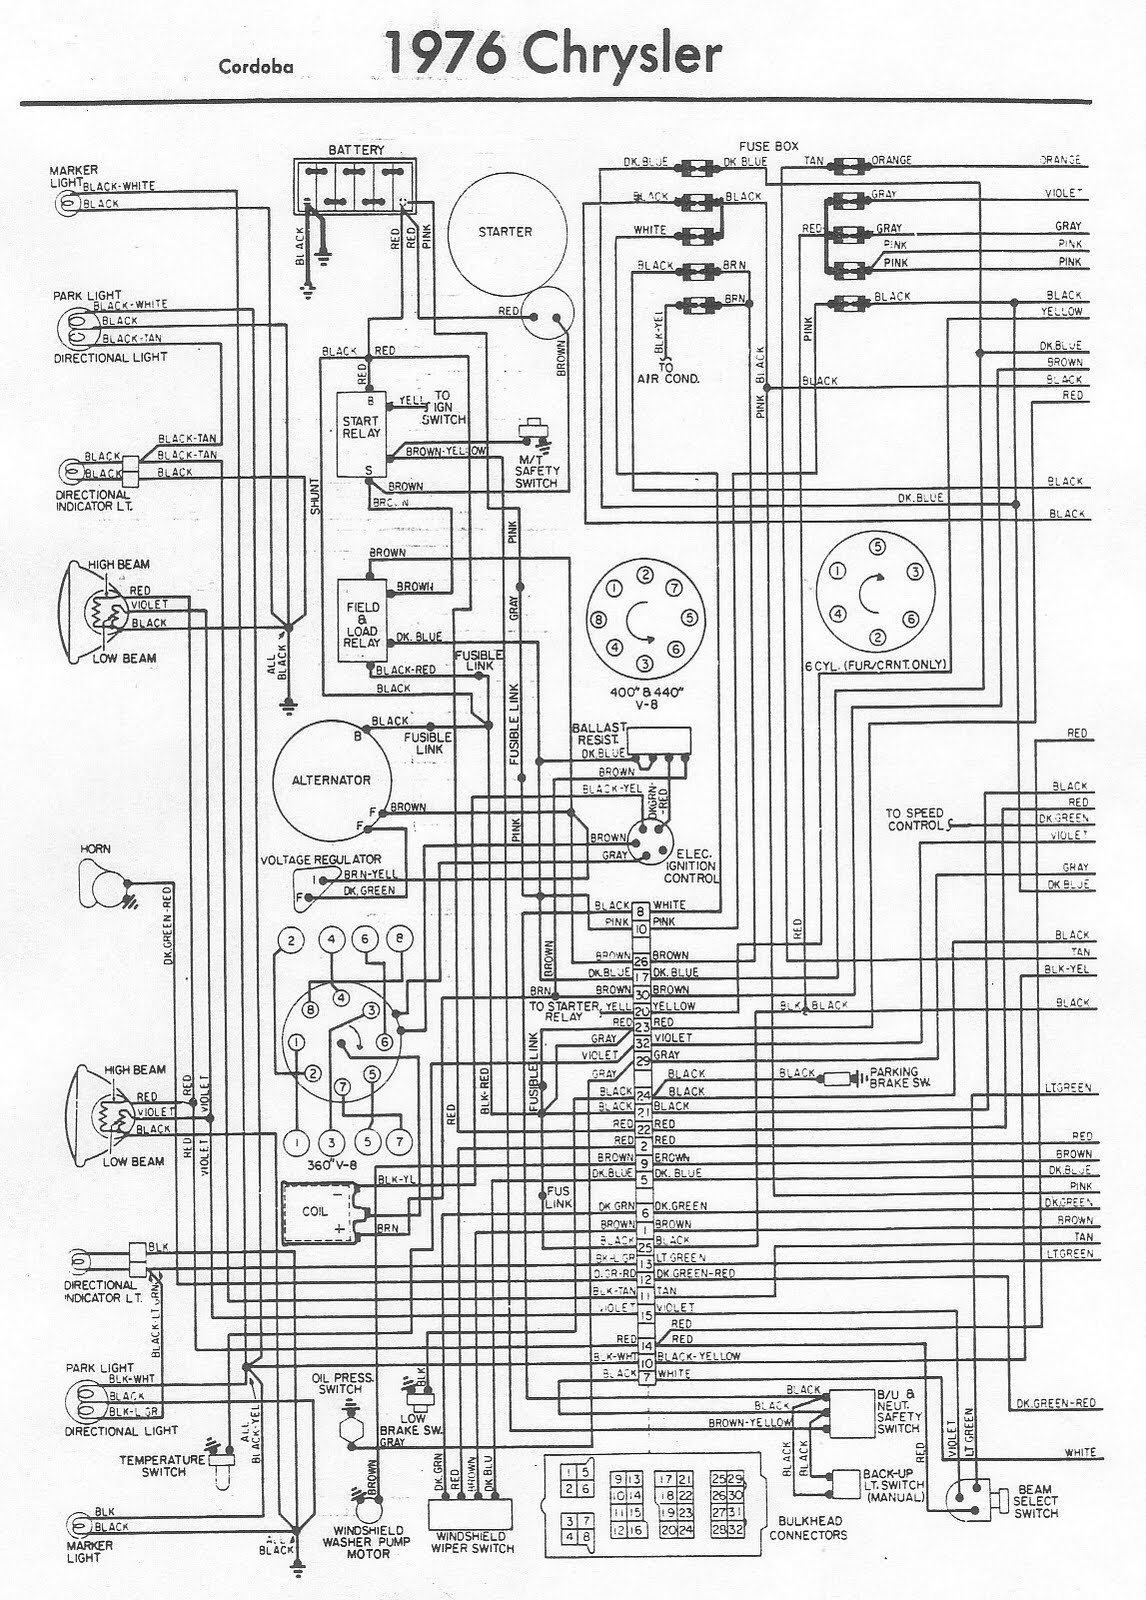 Free Auto Wiring Diagram 1970 Plymouth Belvedere Runner Satellite Electrical Diagrams This Is A Of 1976 Chrysler Cordoba It Shows The Various Circuits Fuses Distributor Etcclick Picture To Download